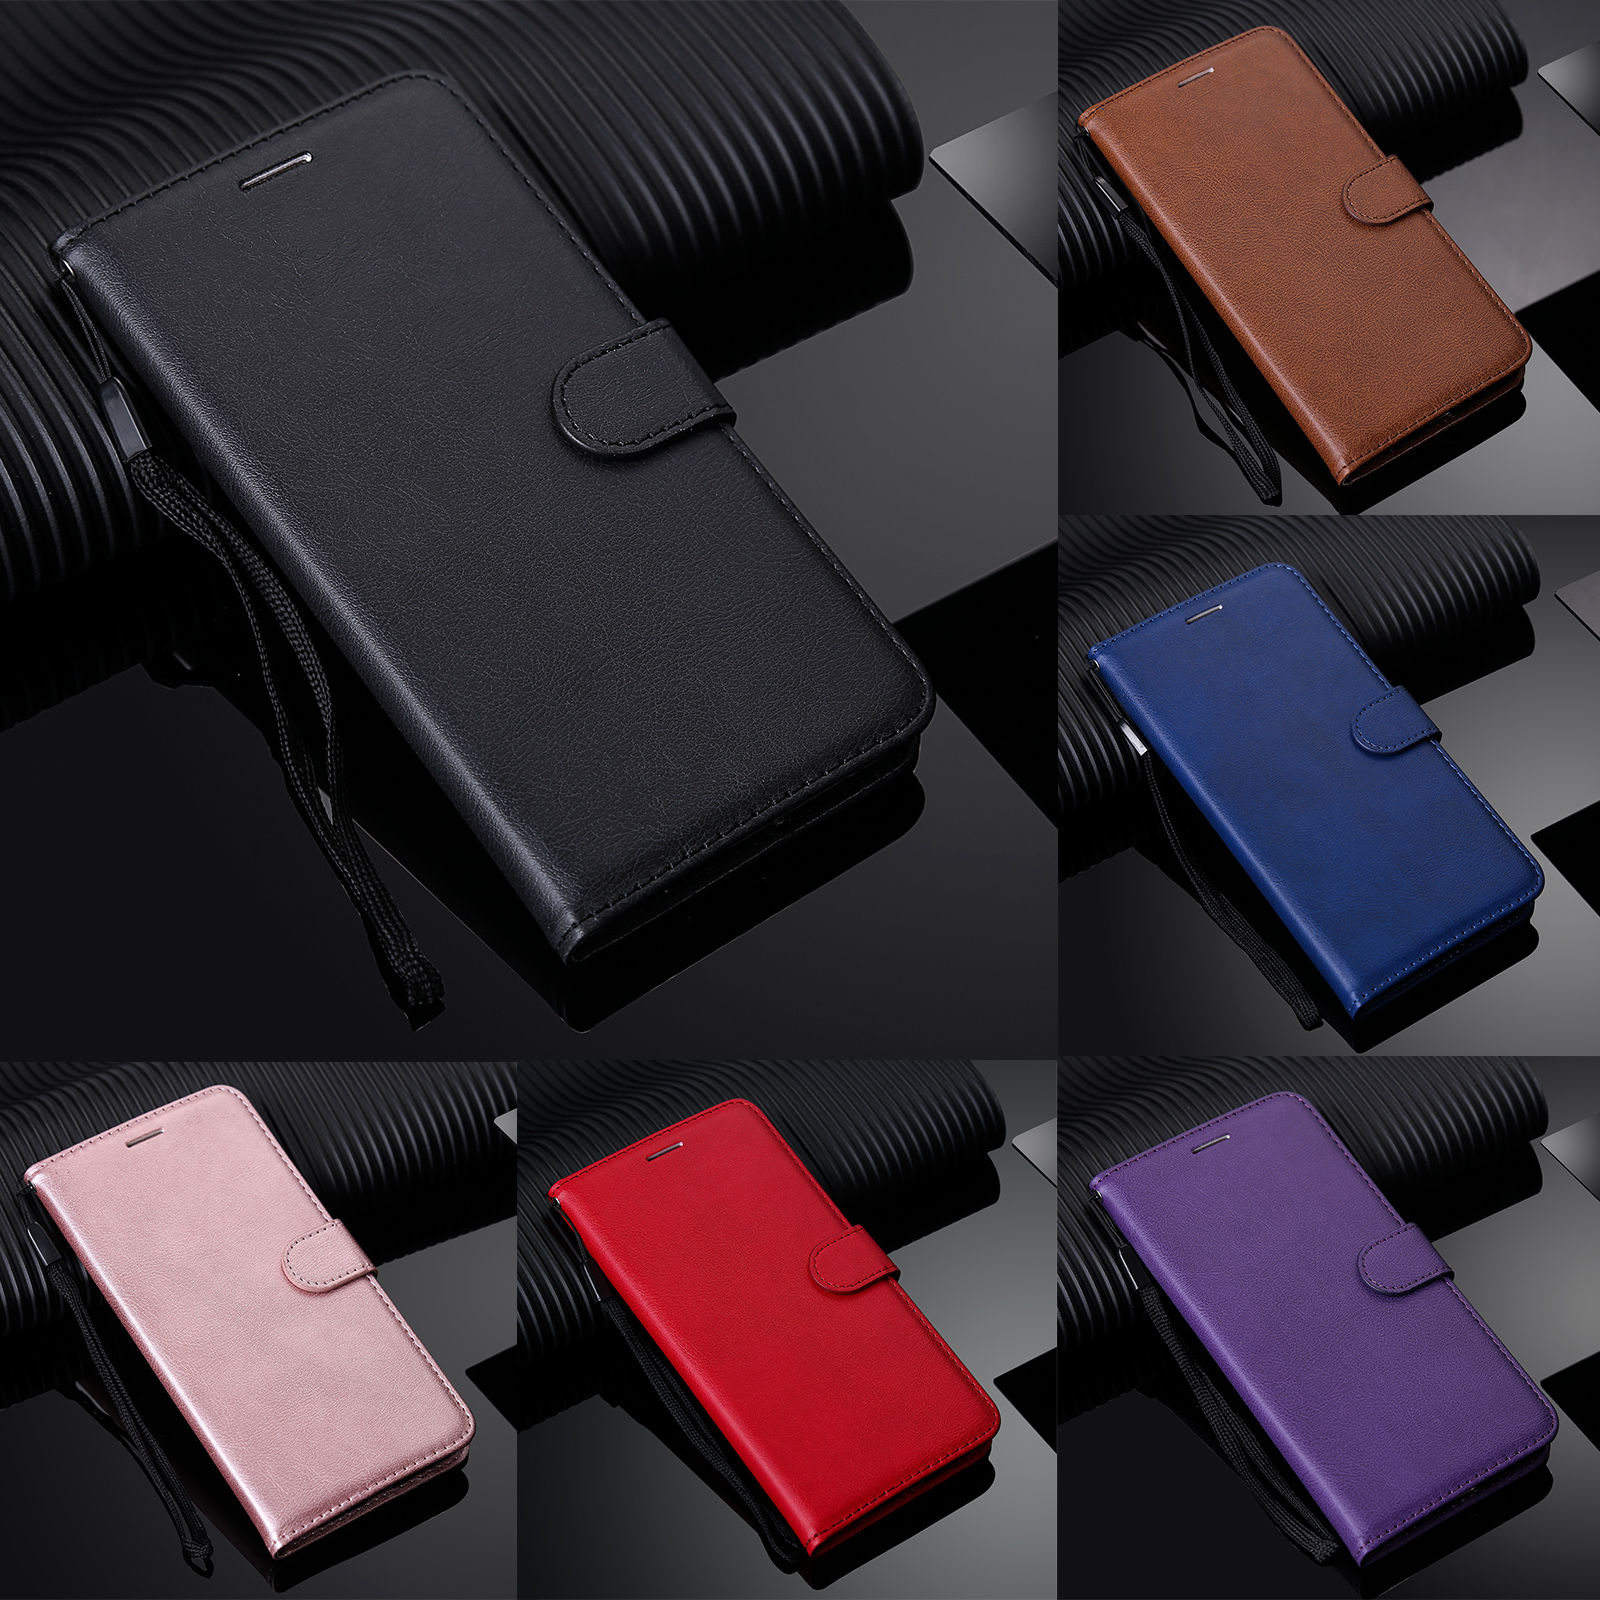 <font><b>Leather</b></font> Coque Flip Wallet <font><b>Case</b></font> for <font><b>Huawei</b></font> P30 P20 Pro Mate 30 20 10 Lite P Smart <font><b>Y5</b></font> Y6 Y7 Y9 2019 <font><b>2018</b></font> Funda With Strap <font><b>Case</b></font> image